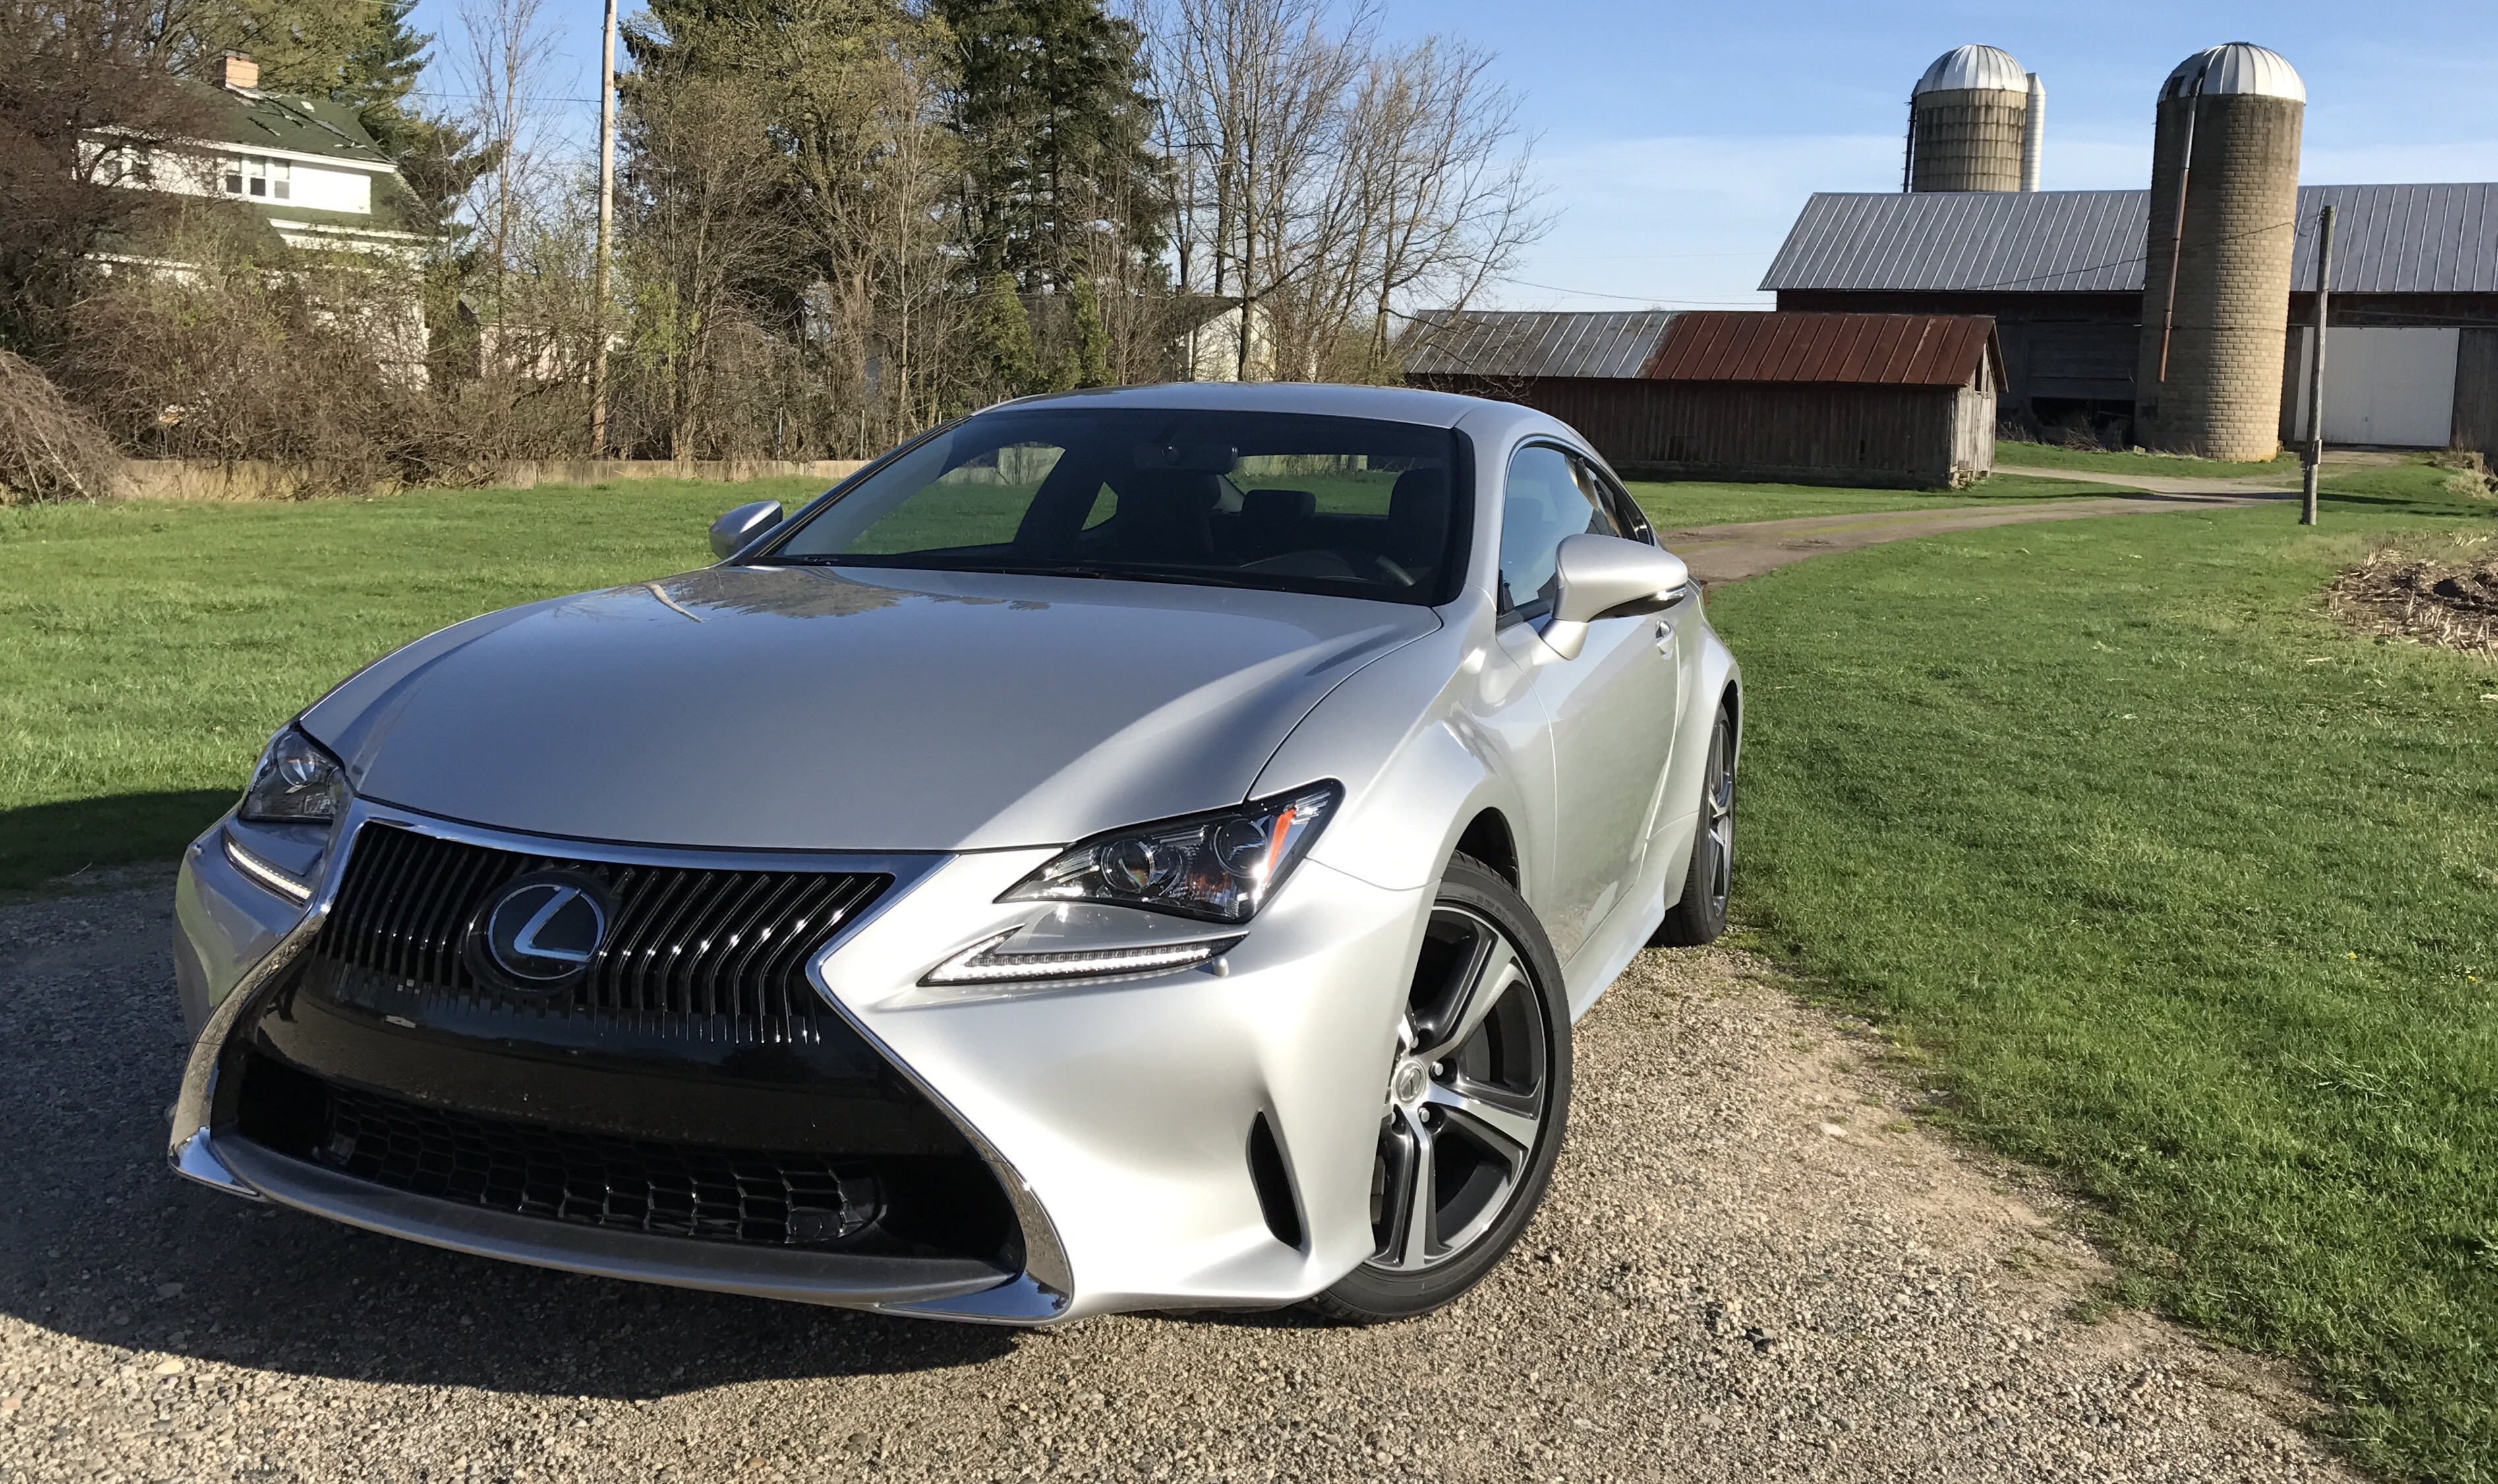 a turbo paul downsized review tan driven price image lexus at is